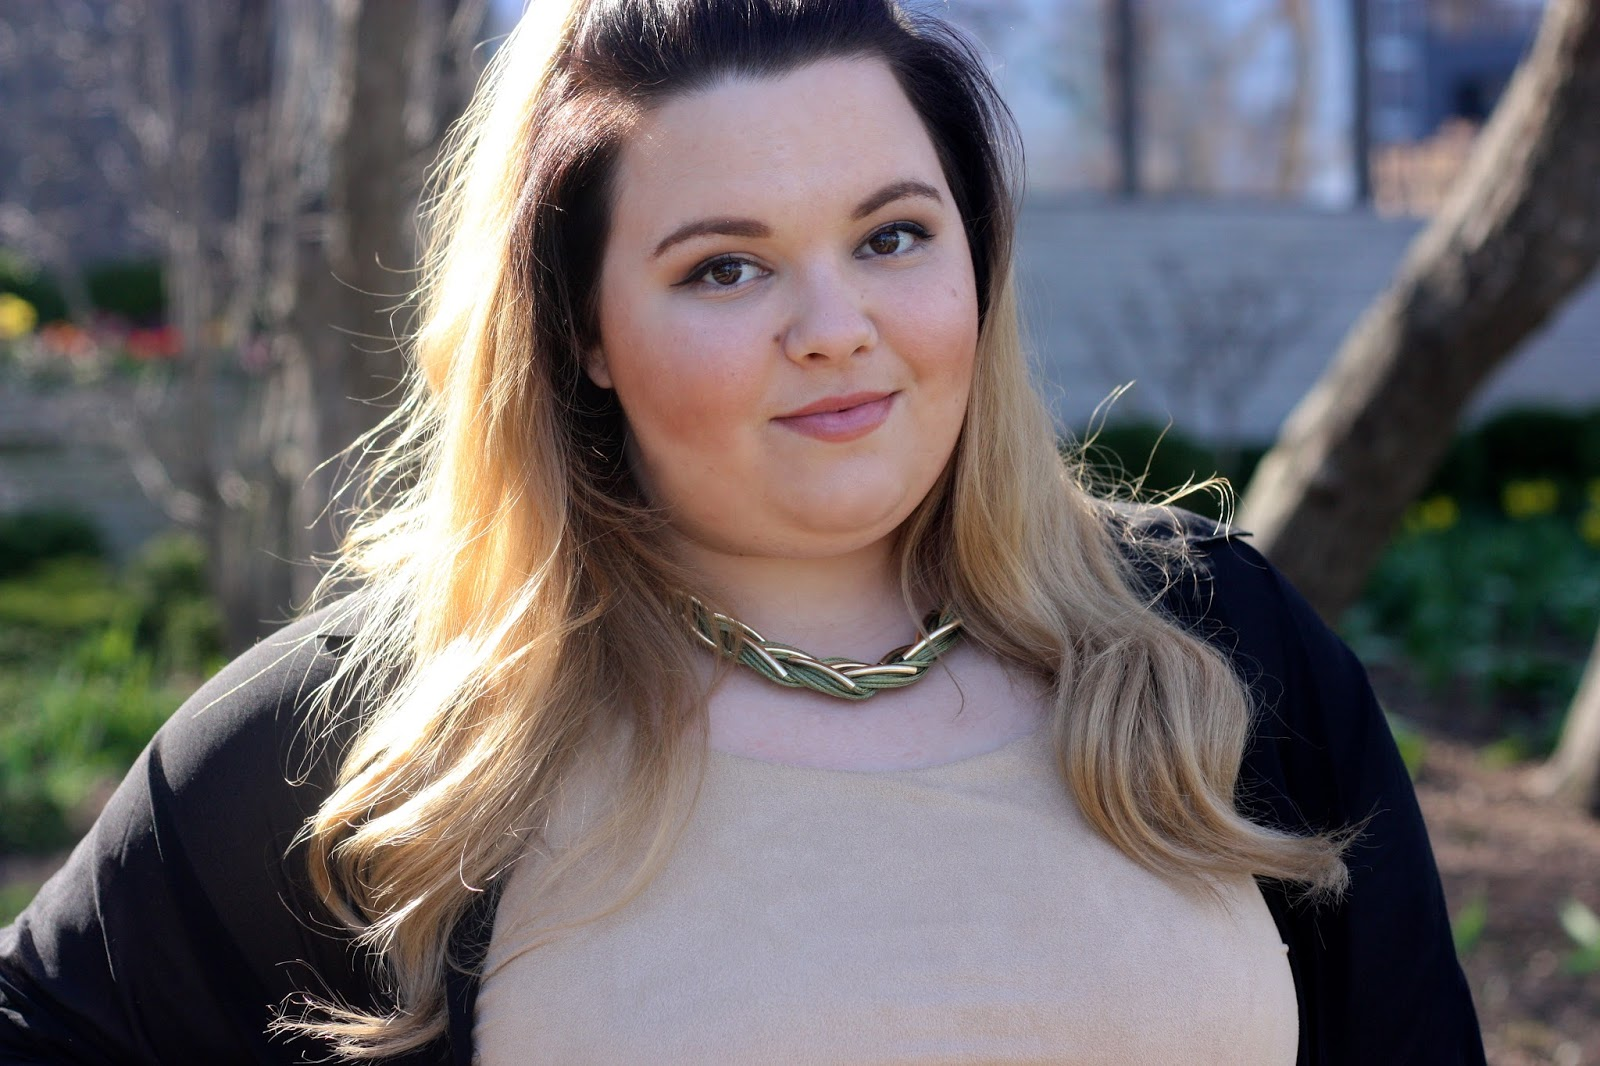 button up sheer maxi dress, mini skirt, suede tank top, plus size fashion blogger, fashion blogger, plus size, natalie craig, natalie in the city, coachella fashion, stagecoach fashion, festival plus size fashion